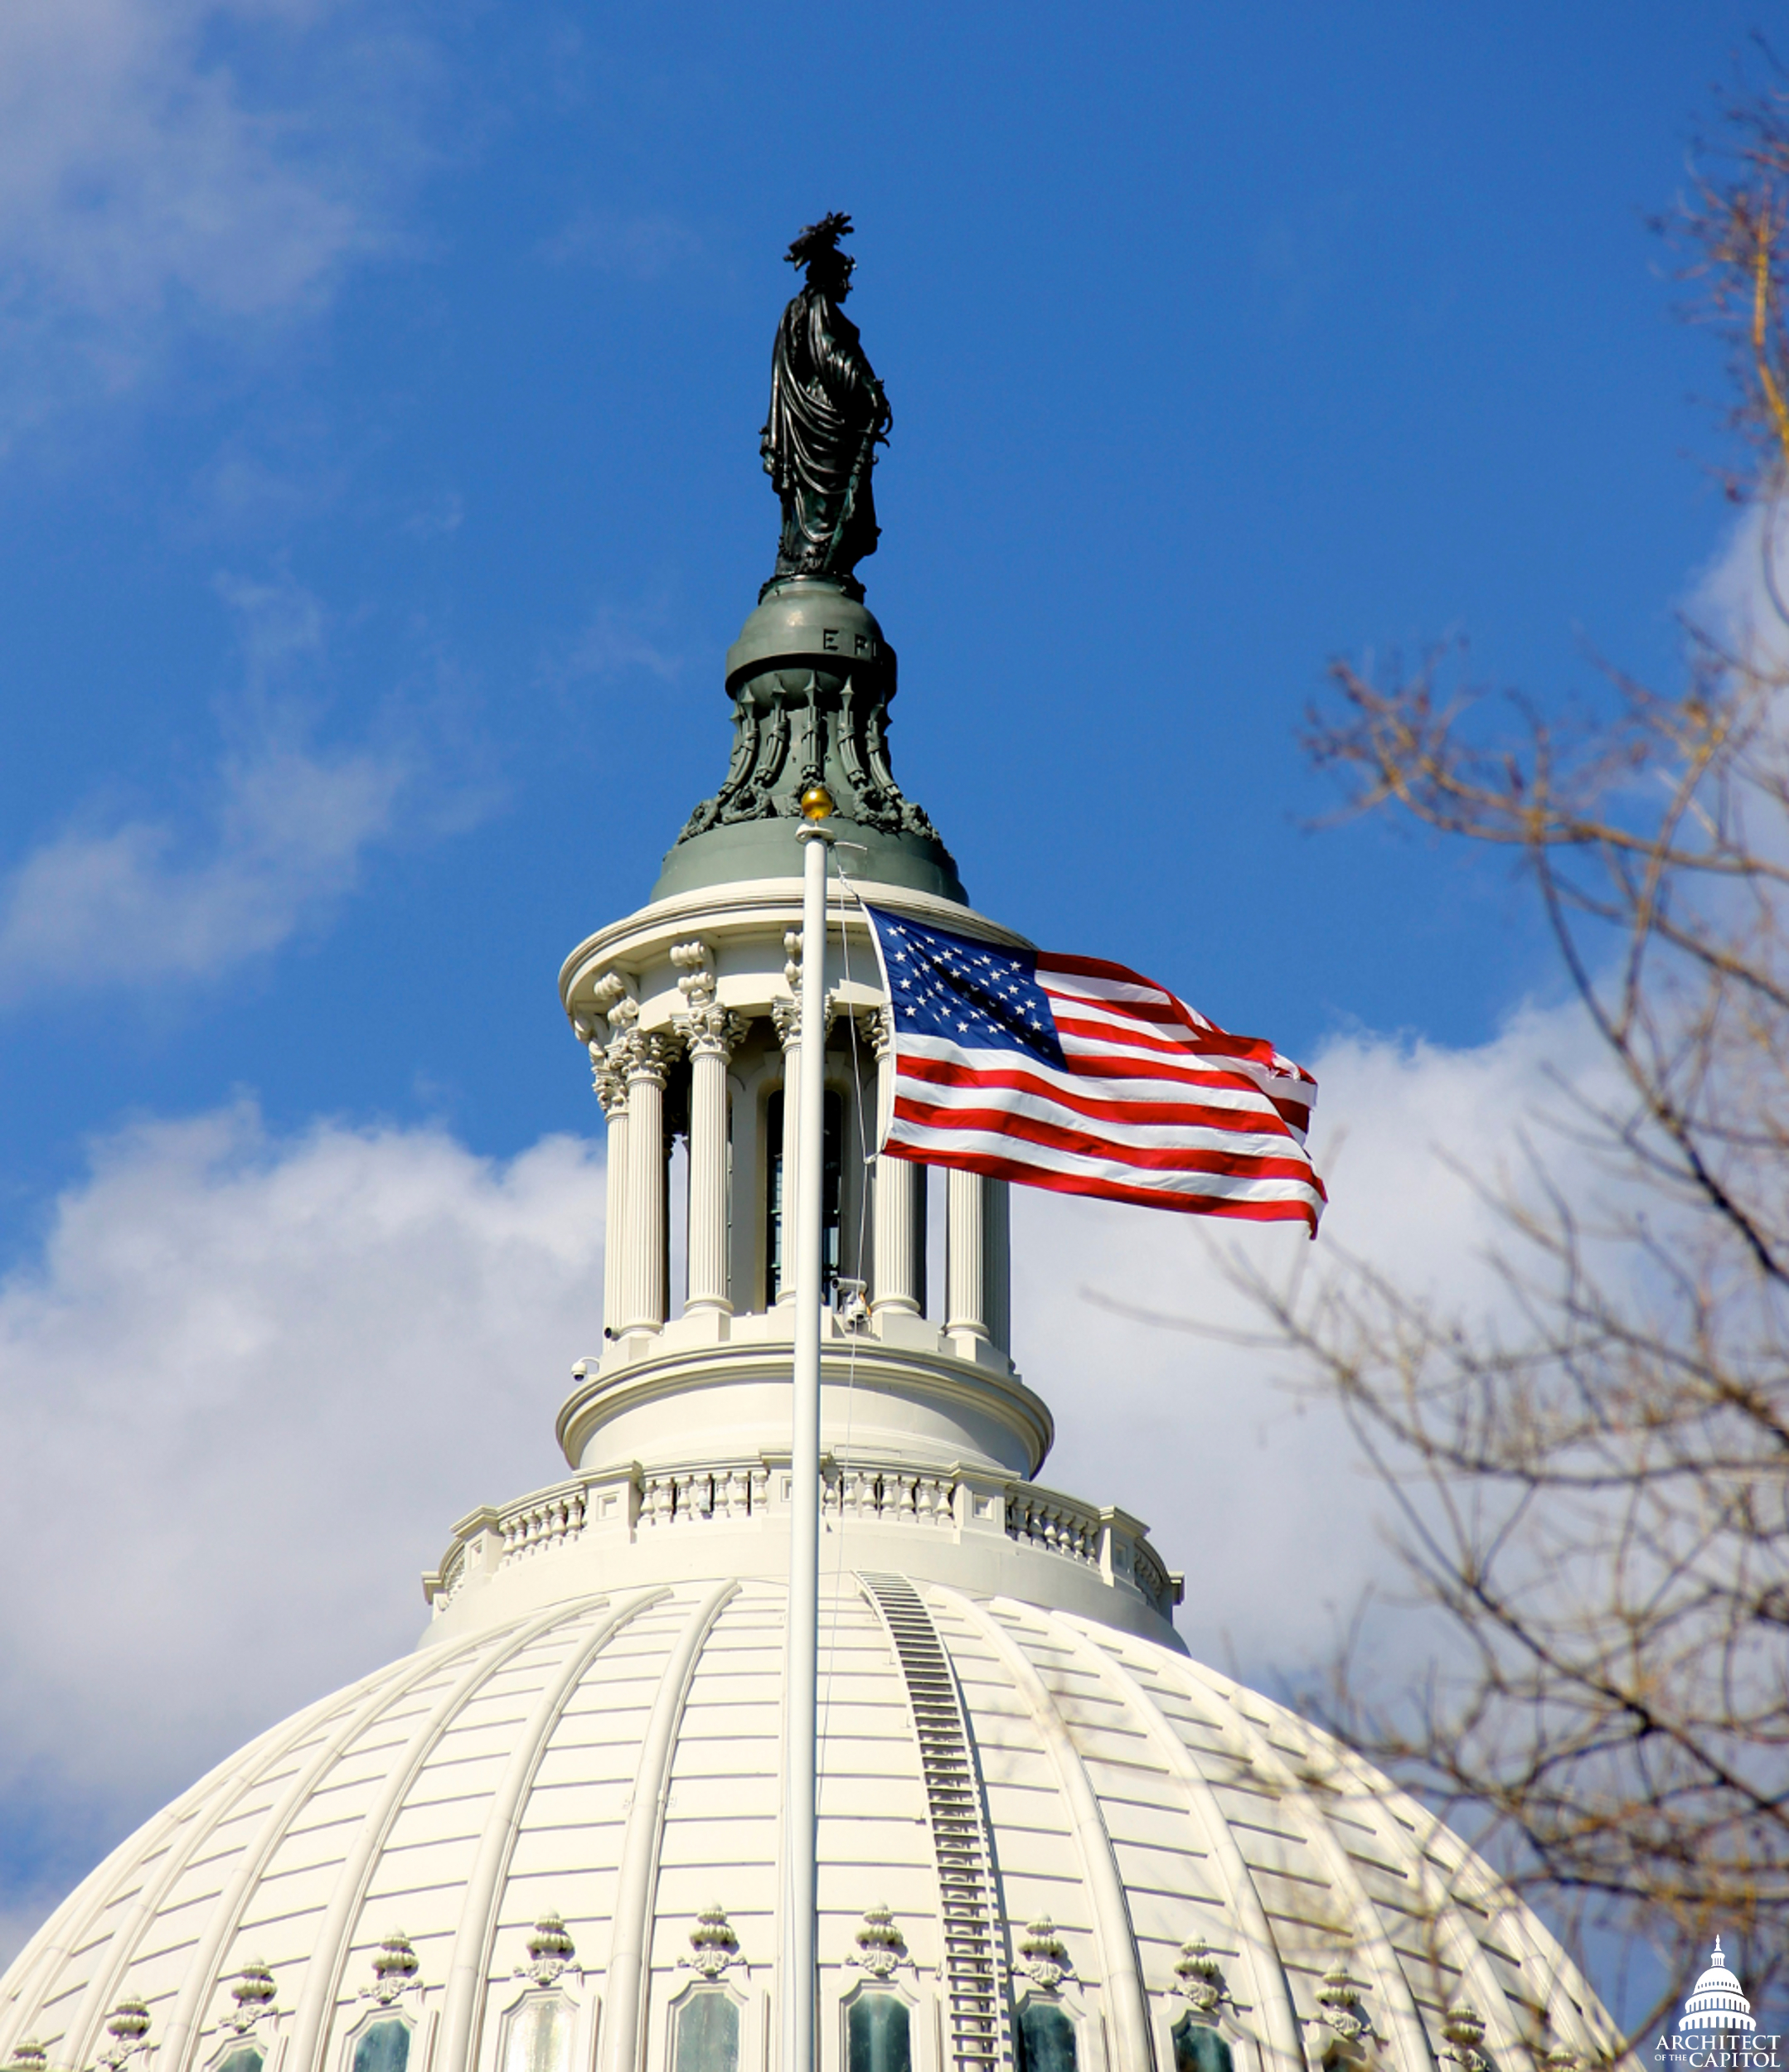 FileStatue of Freedom with flag flying over US House of